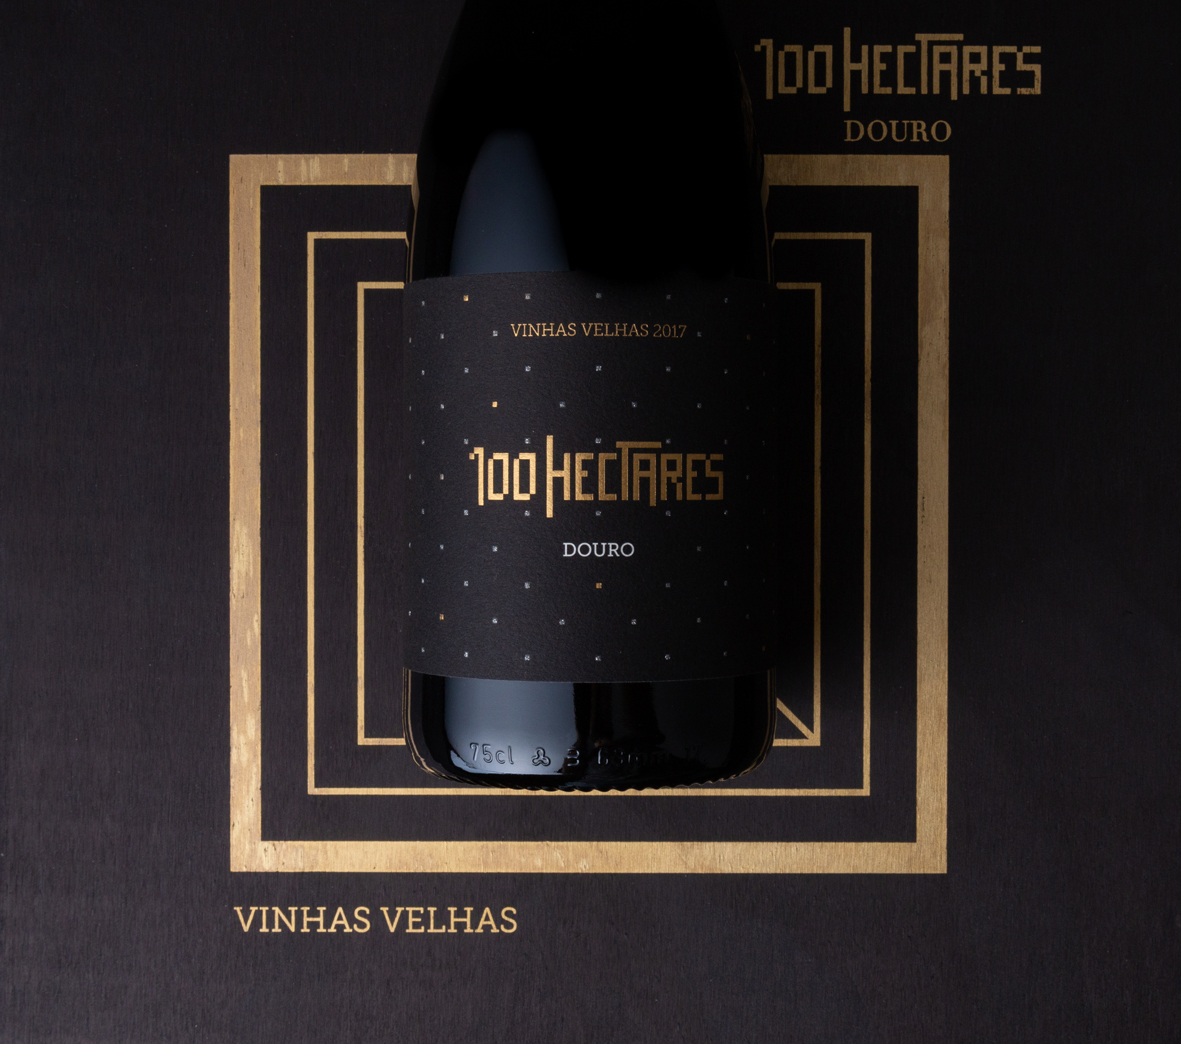 Brand Identity and Packaging Design for 100 Hectares Old Vines